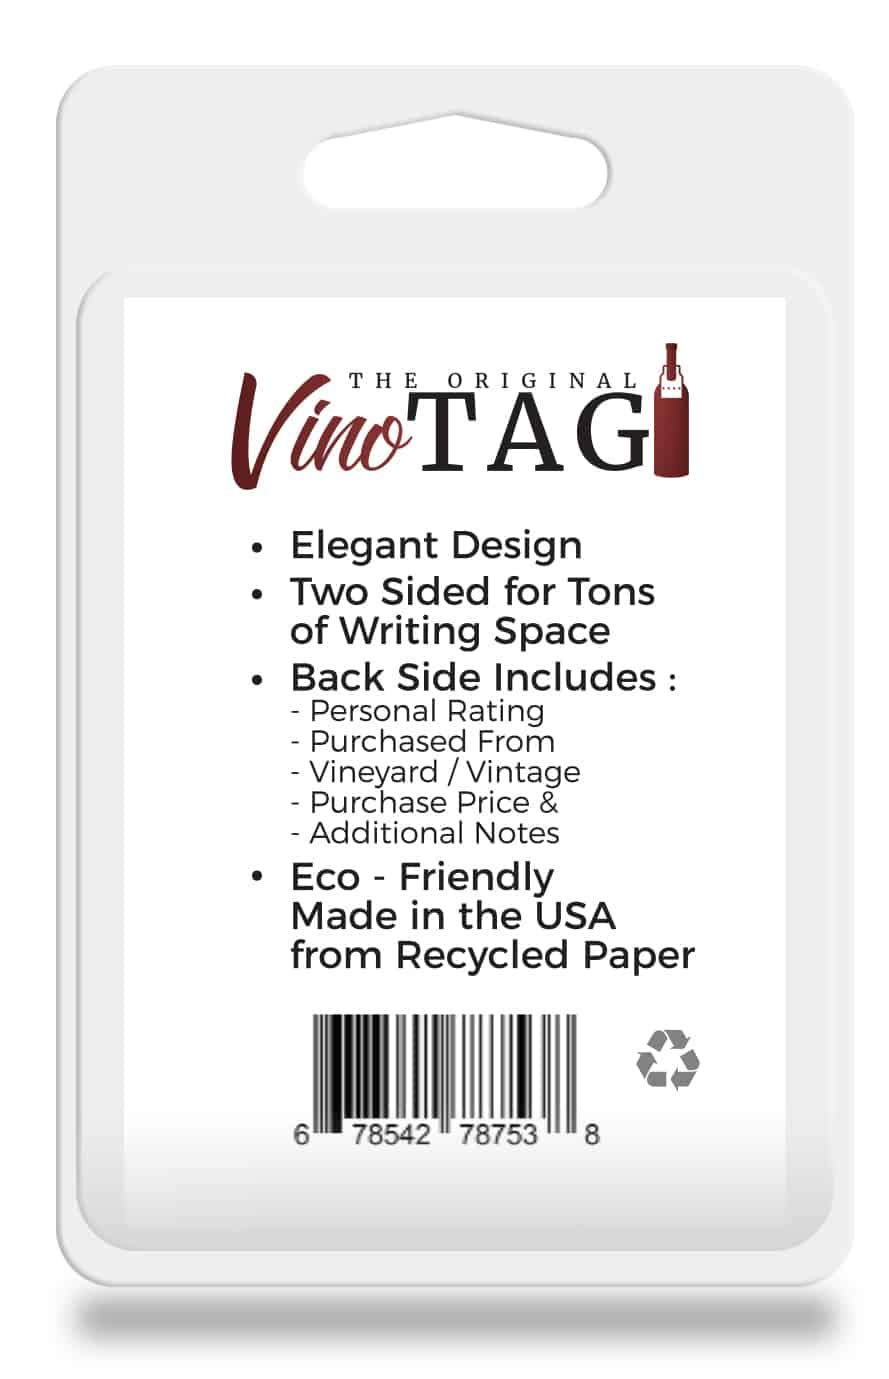 Vino Tag Two Sided Wine Tags (100) - New Packaging, Same Great Product by Vino Tag